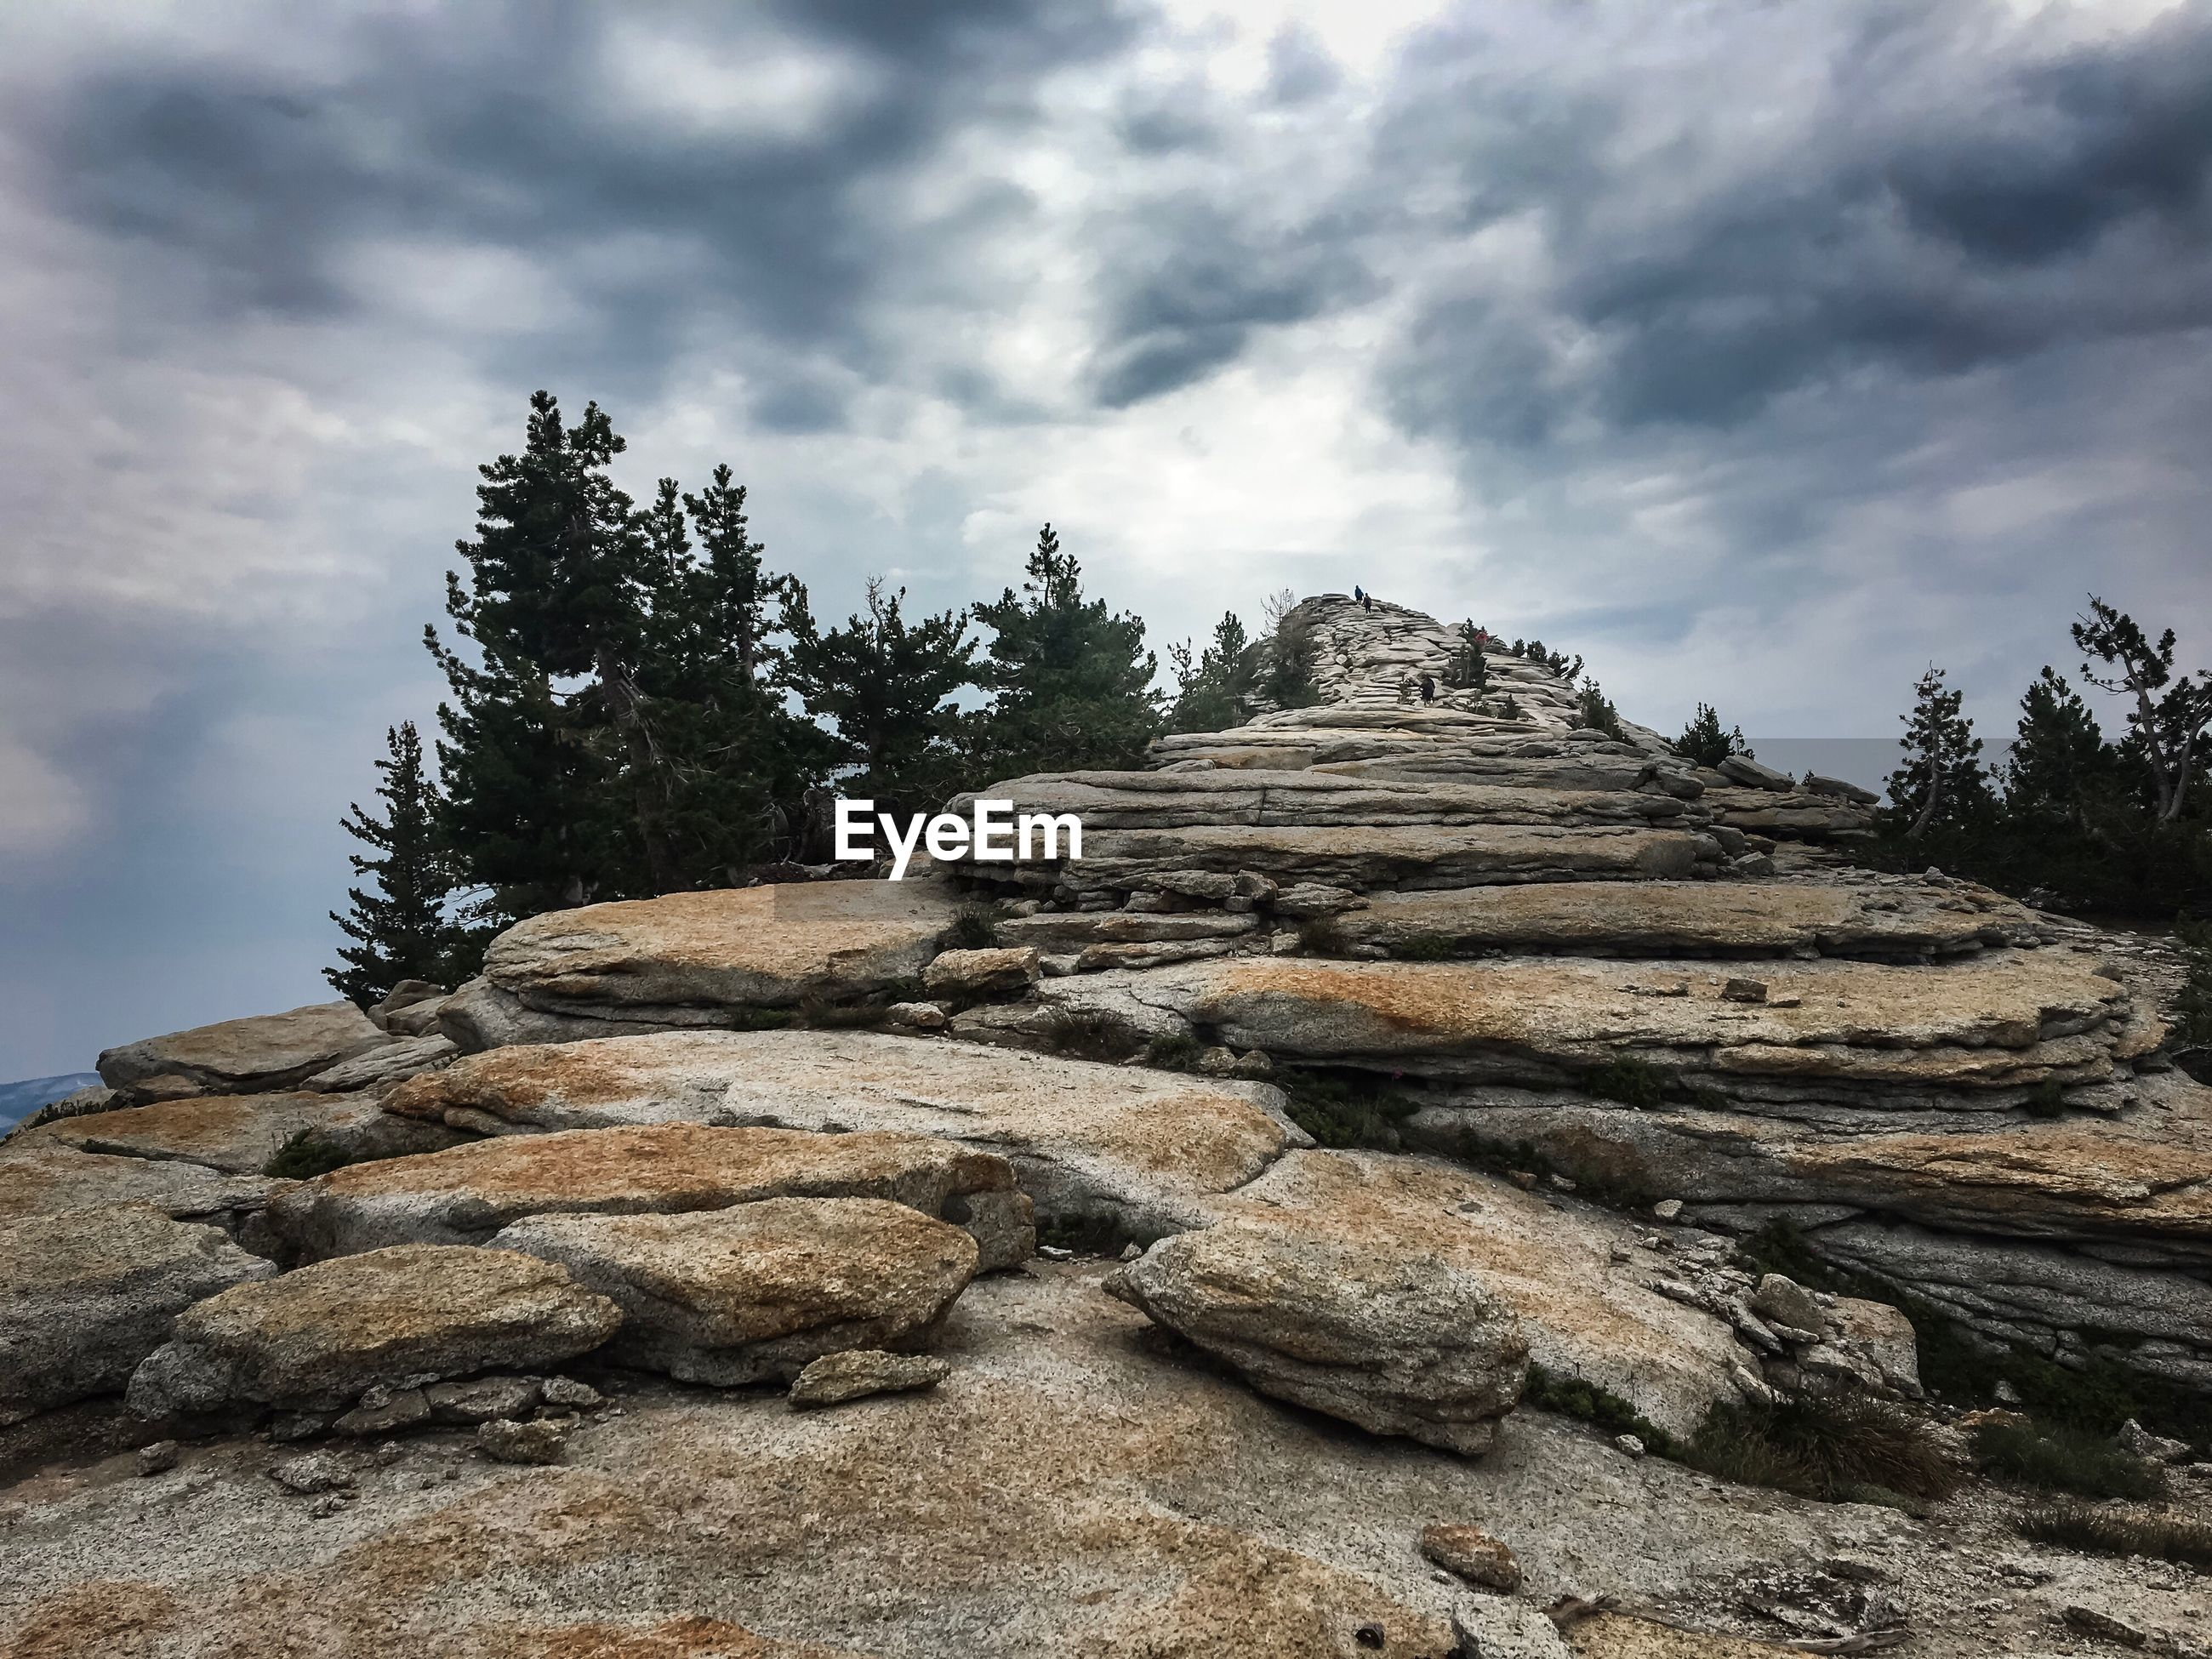 LOW ANGLE VIEW OF STACK OF ROCKS AGAINST SKY